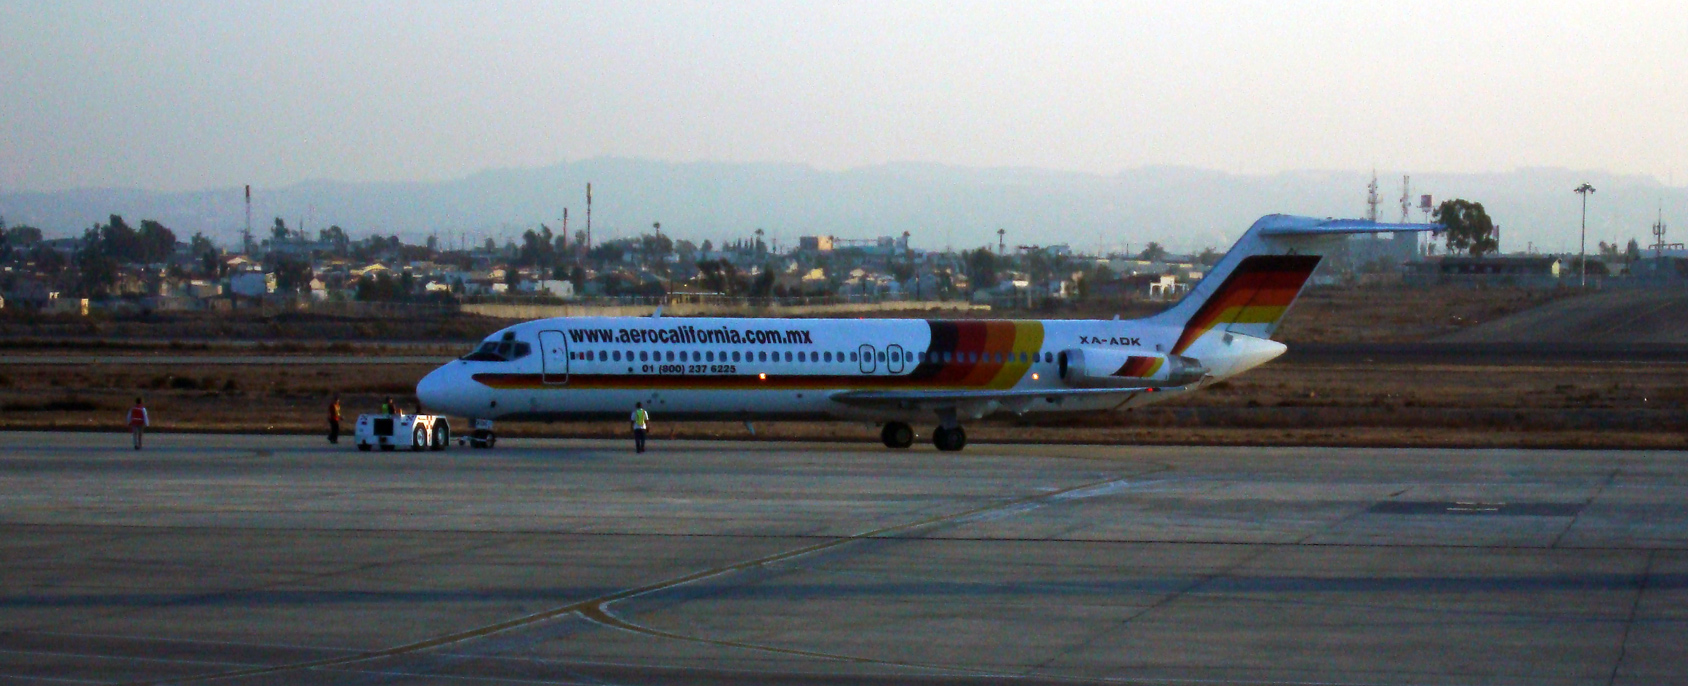 Image of Douglas DC-9 (1/144th scale)